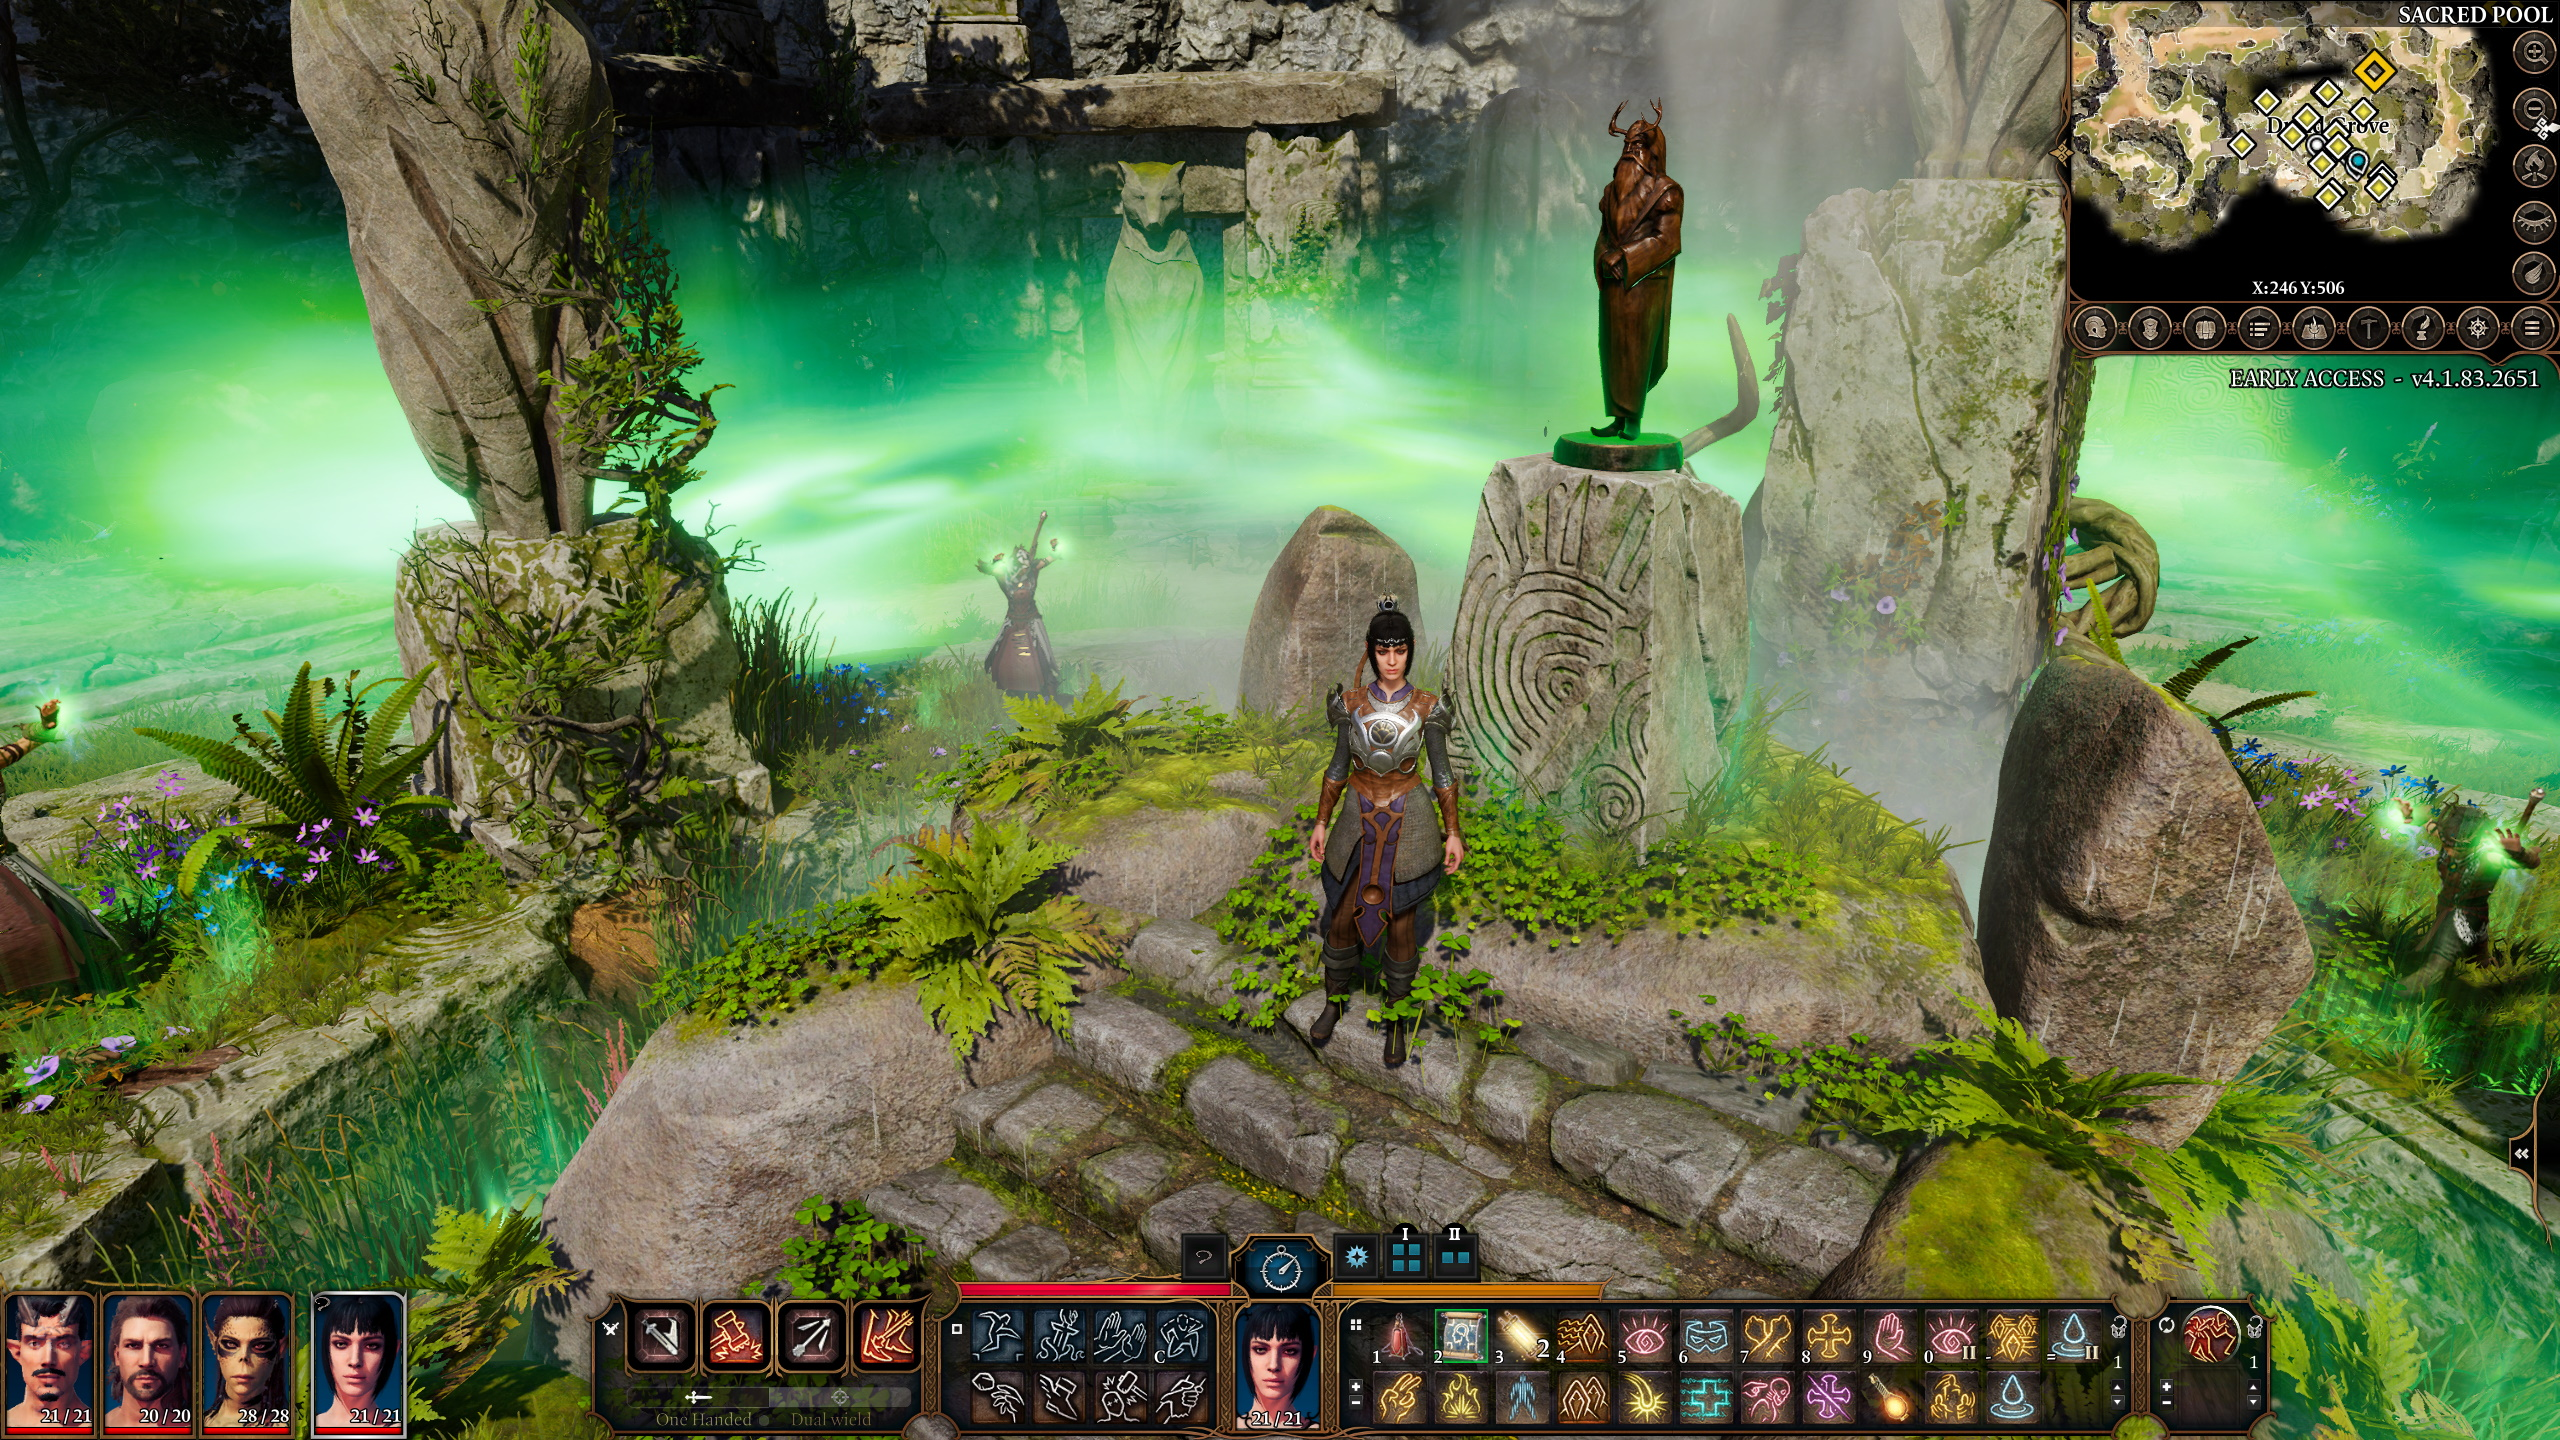 A screenshot from Baldur's Gate 3 showing the team standing around an overgrown stone ruin in a grove. They are surrounded by moss and plants and it is very pretty